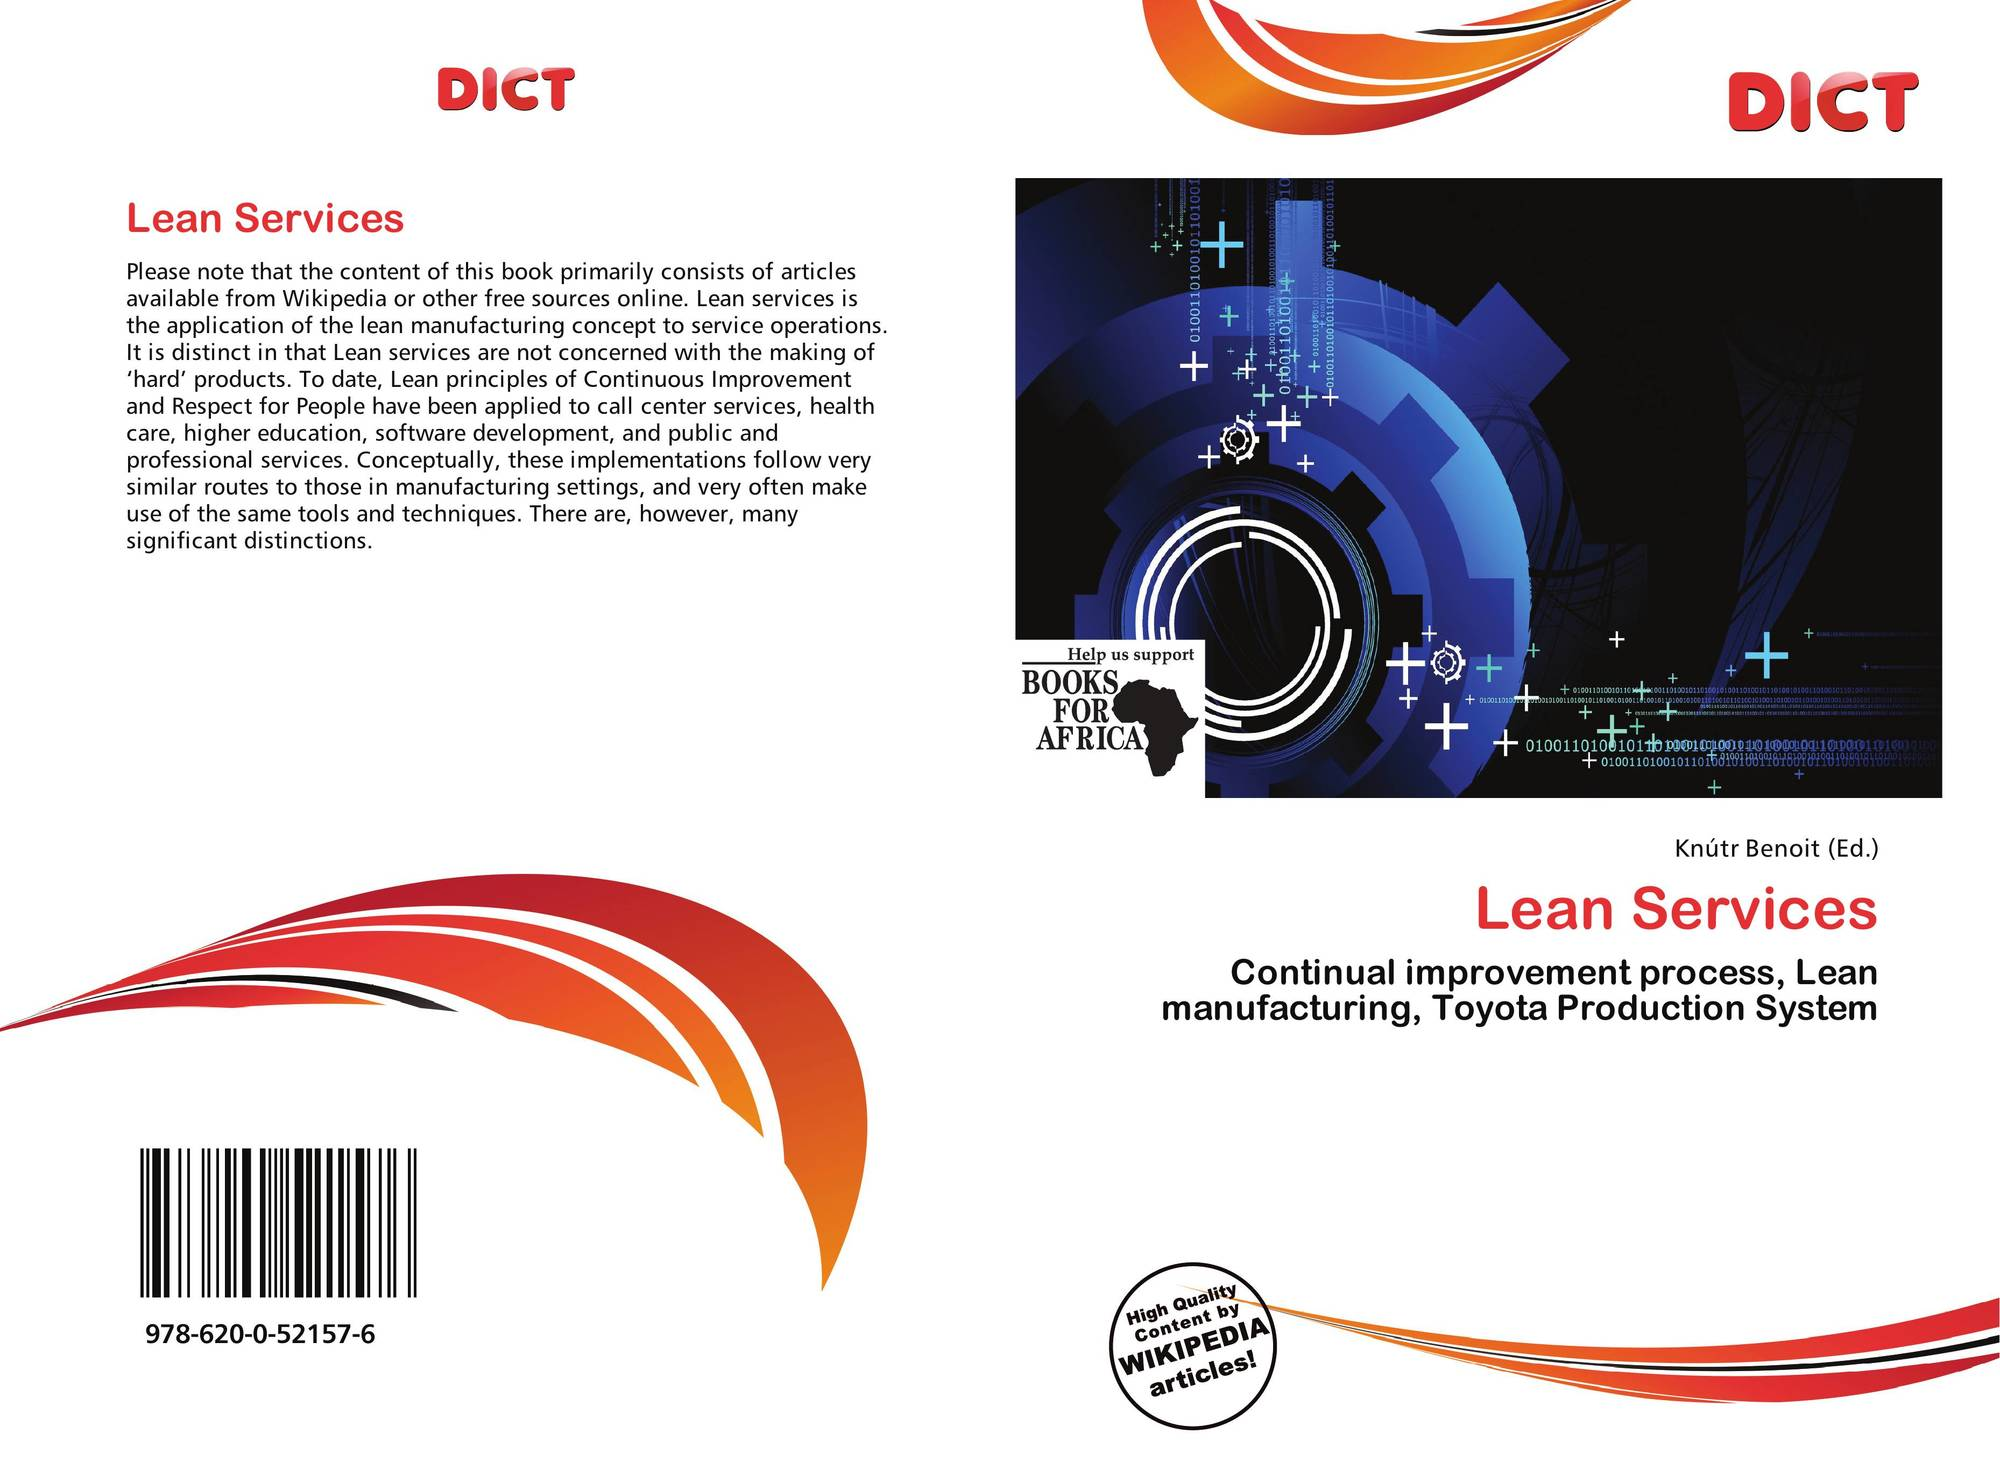 Lean construction wikipedia - Portada Del Libro De Lean Services